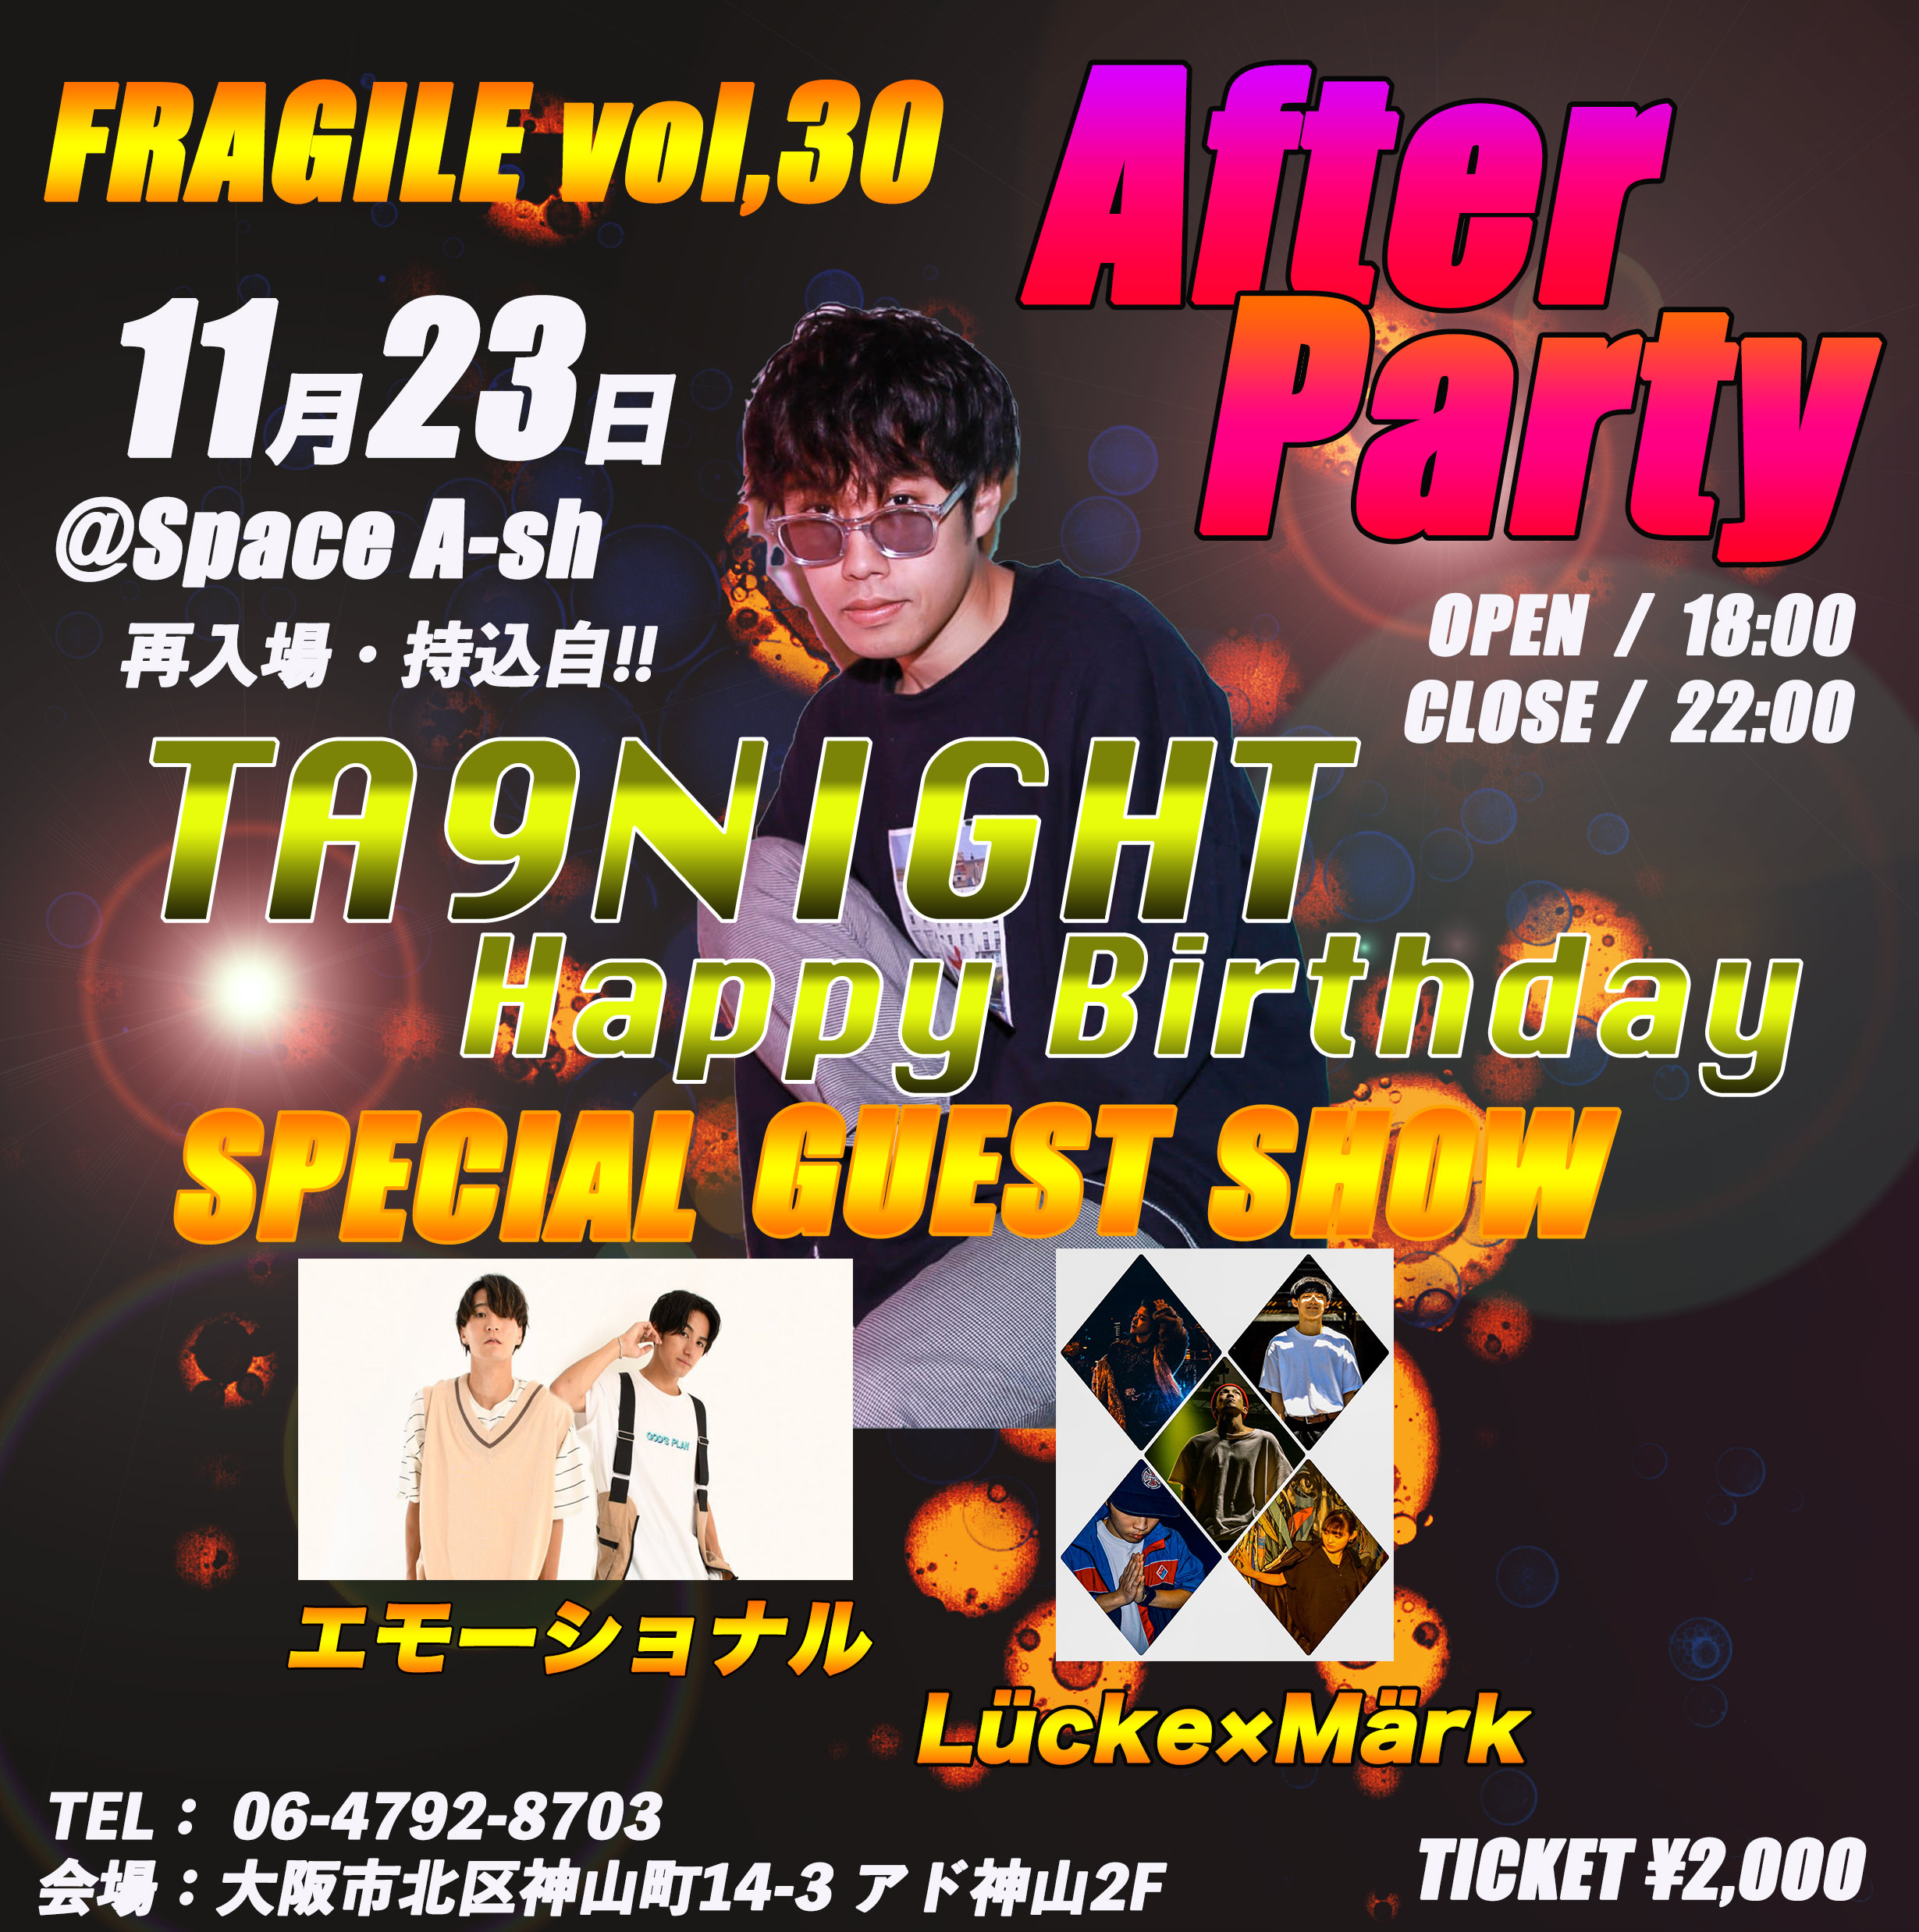 After Party vol.30 TA9NIGHT